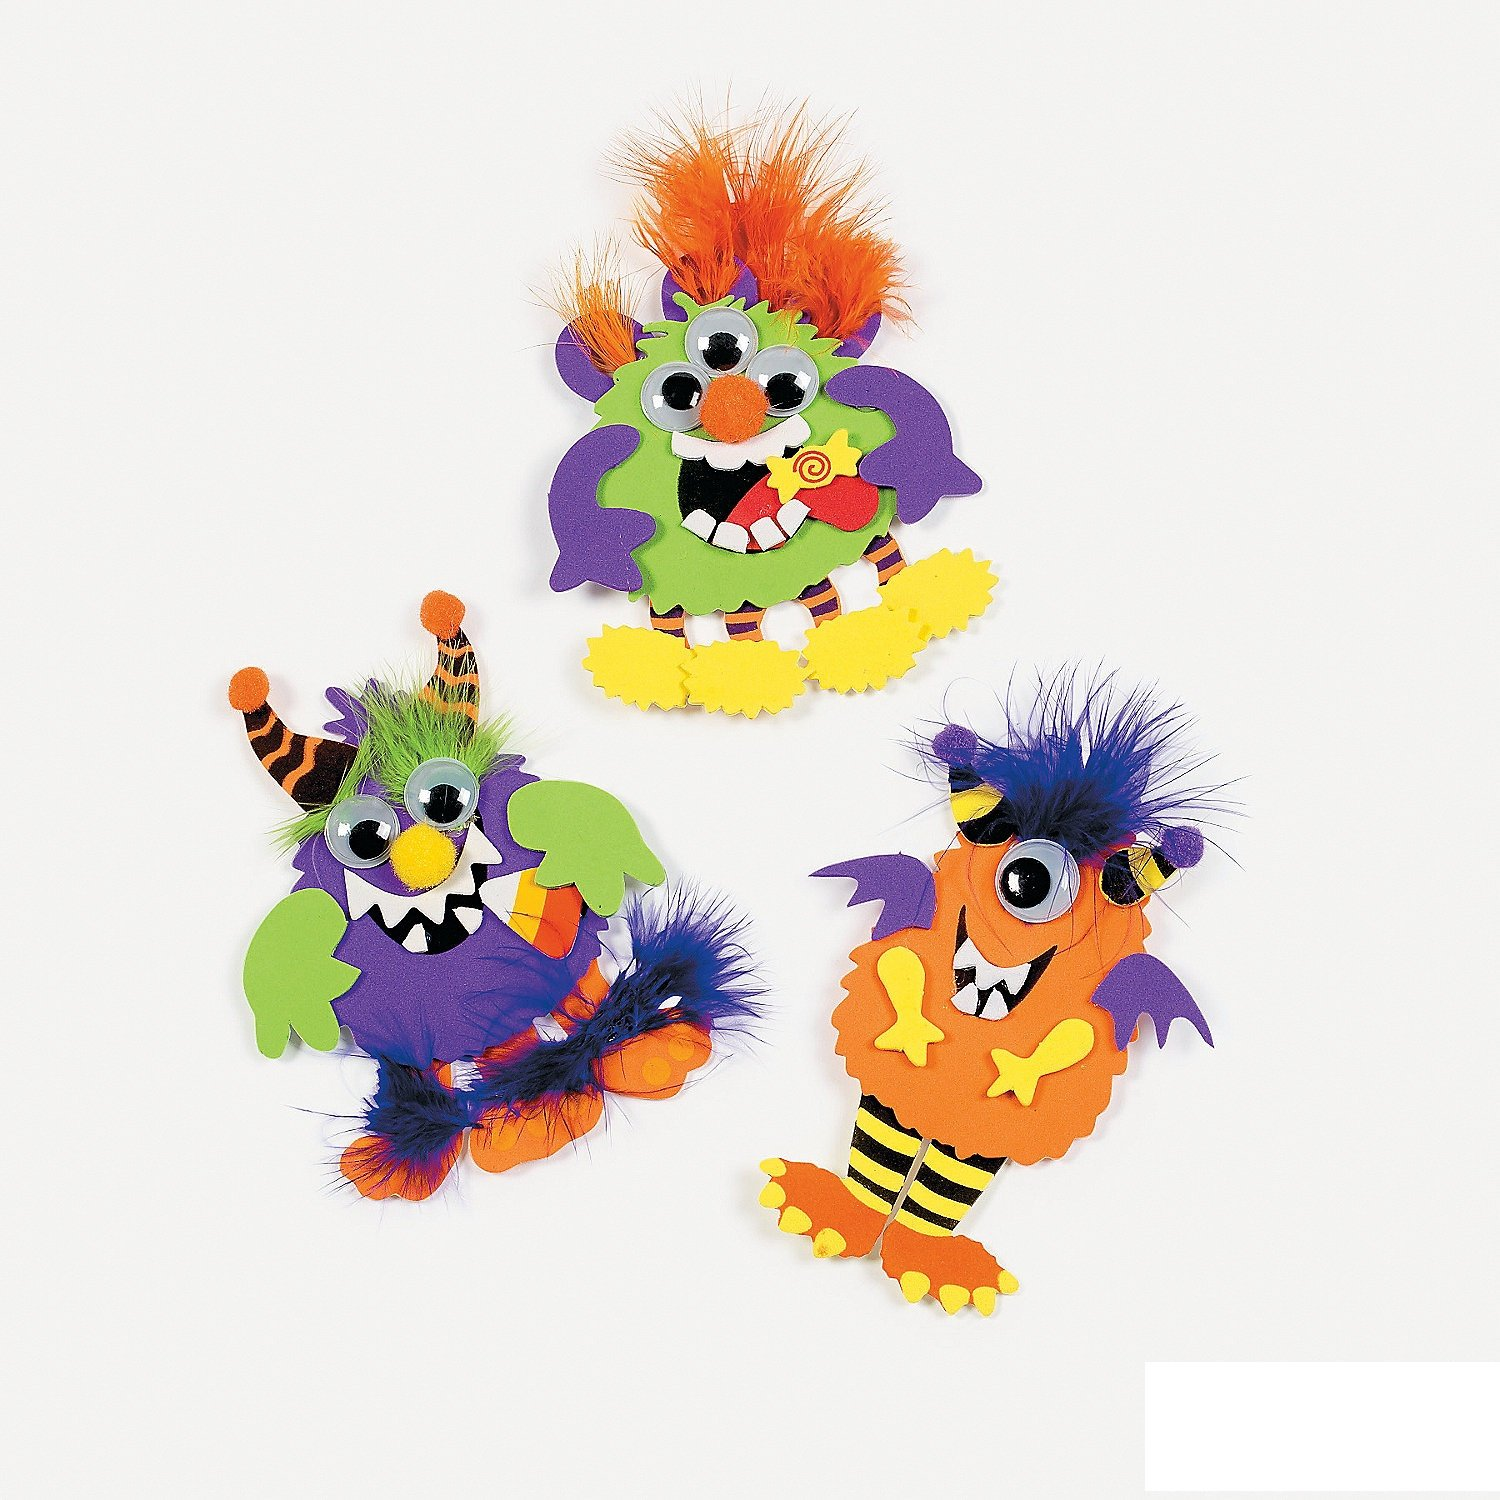 Monster Magnet Craft Kit - Crafts for Kids Magnet Crafts-Makes 12